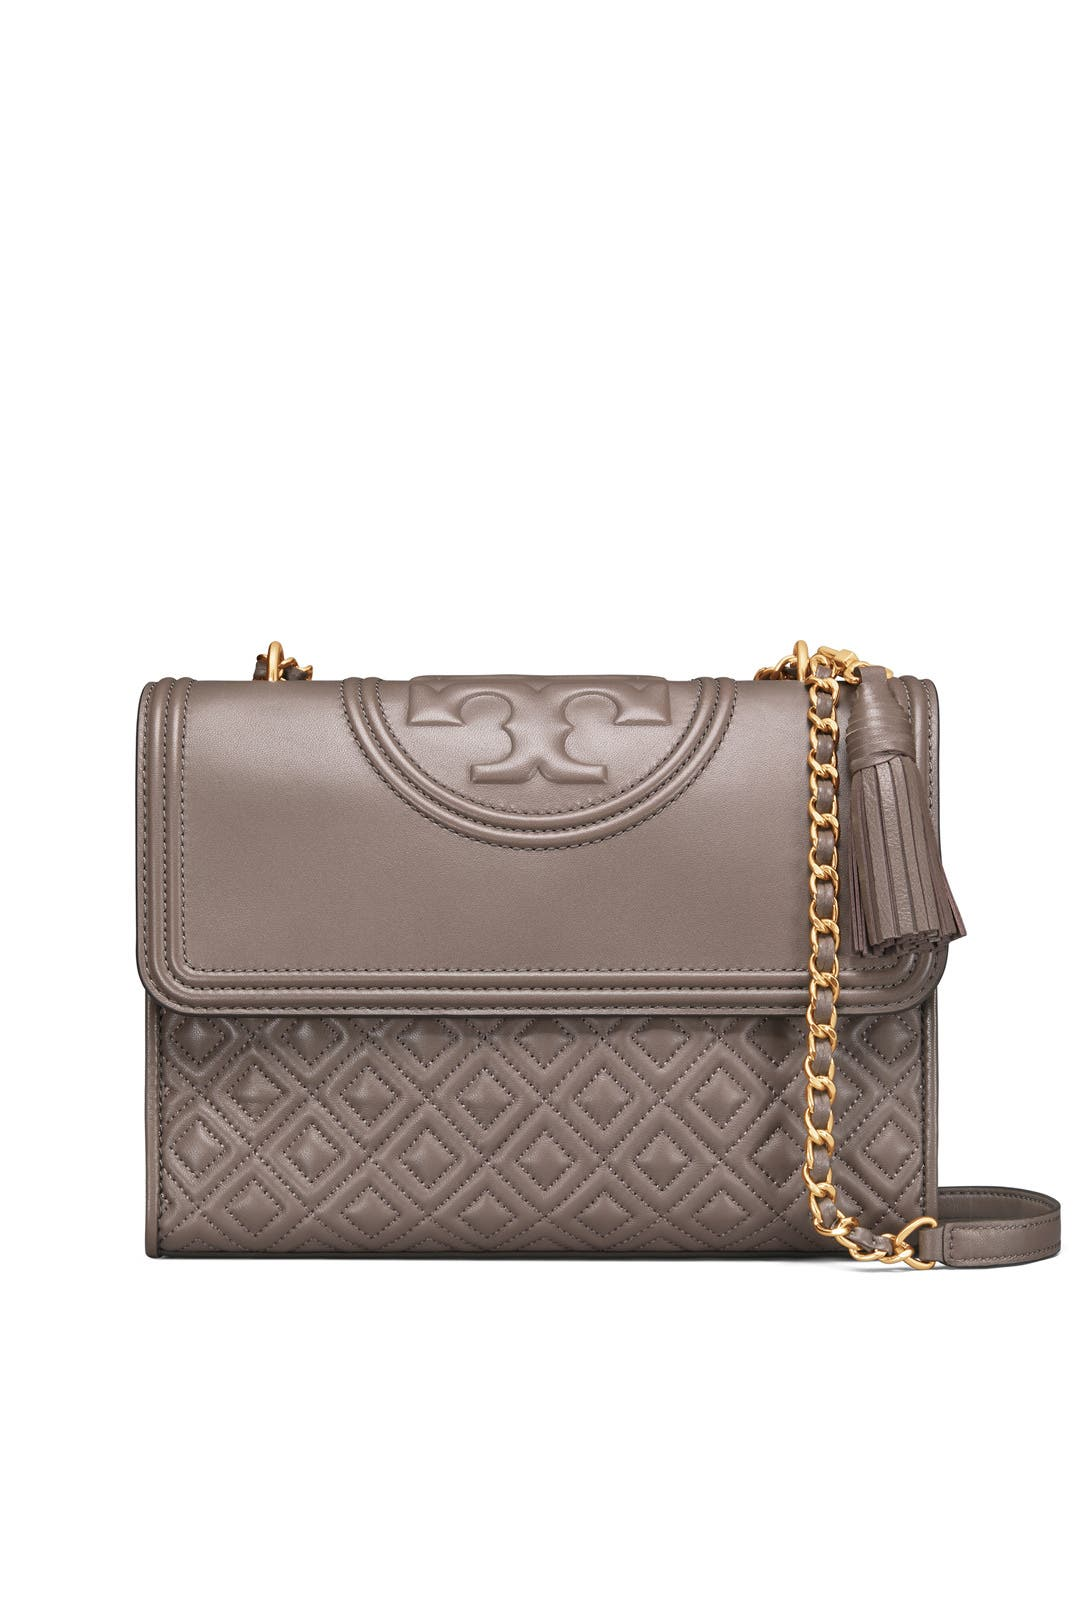 93f862f5f5f Tory Burch Accessories. Read Reviews. Maple Fleming Small Convertible Bag.   498 retail